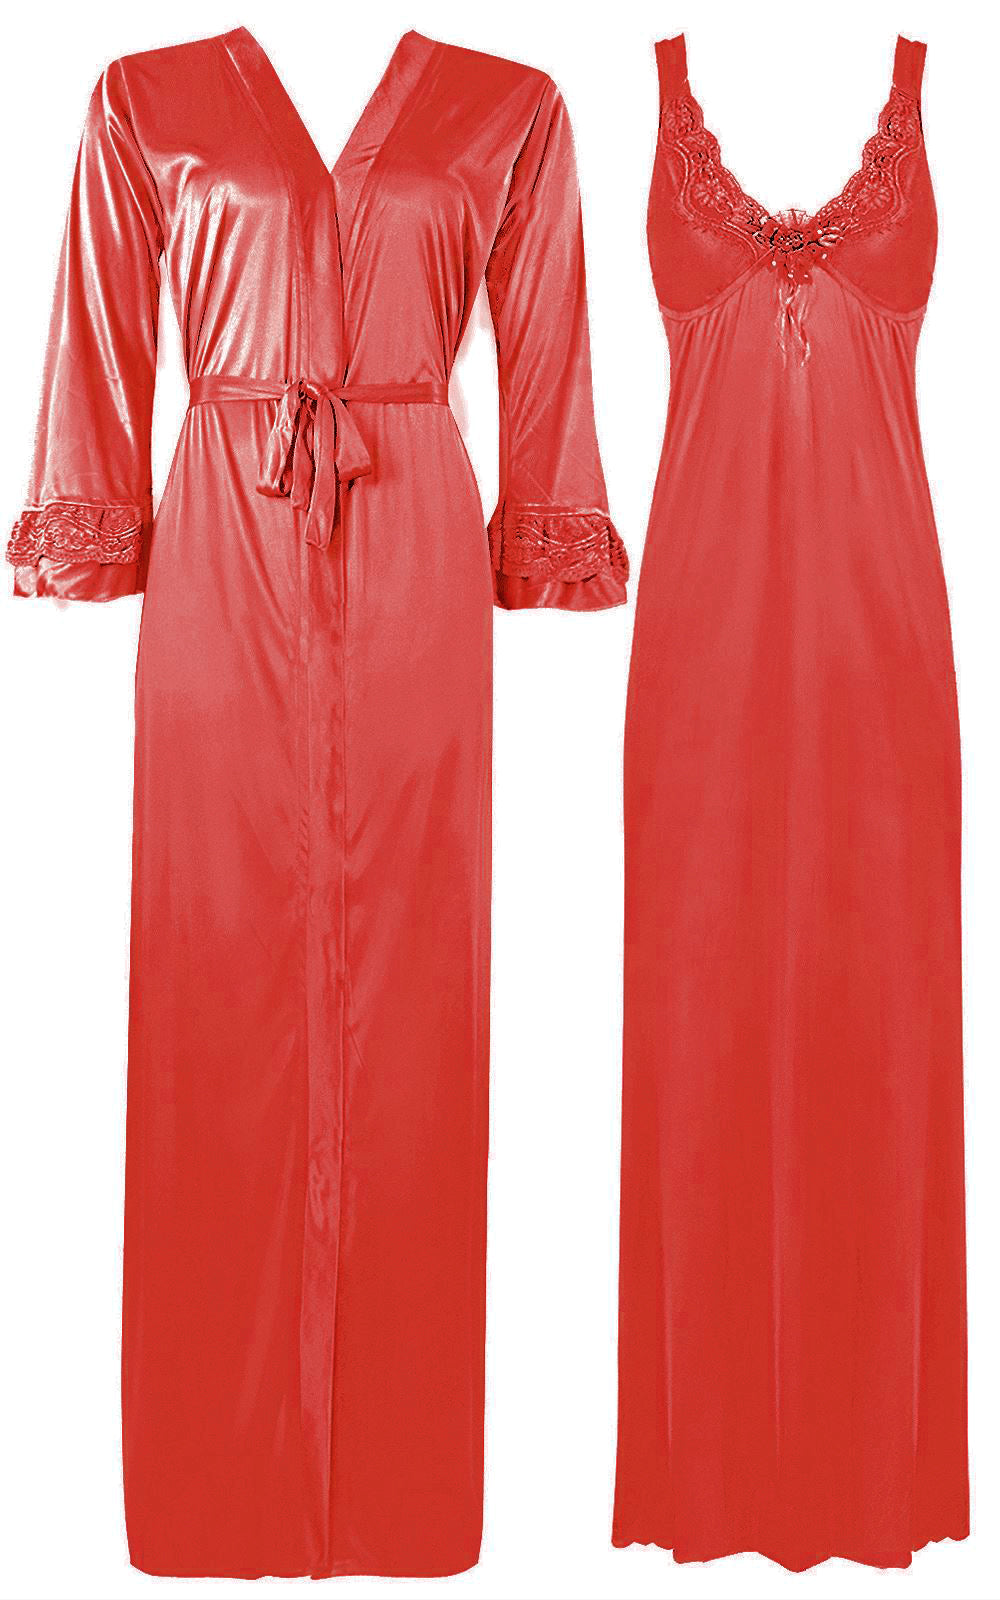 2 Piece Satin Nighty and Robe With Long Sleeve Dressing Gown